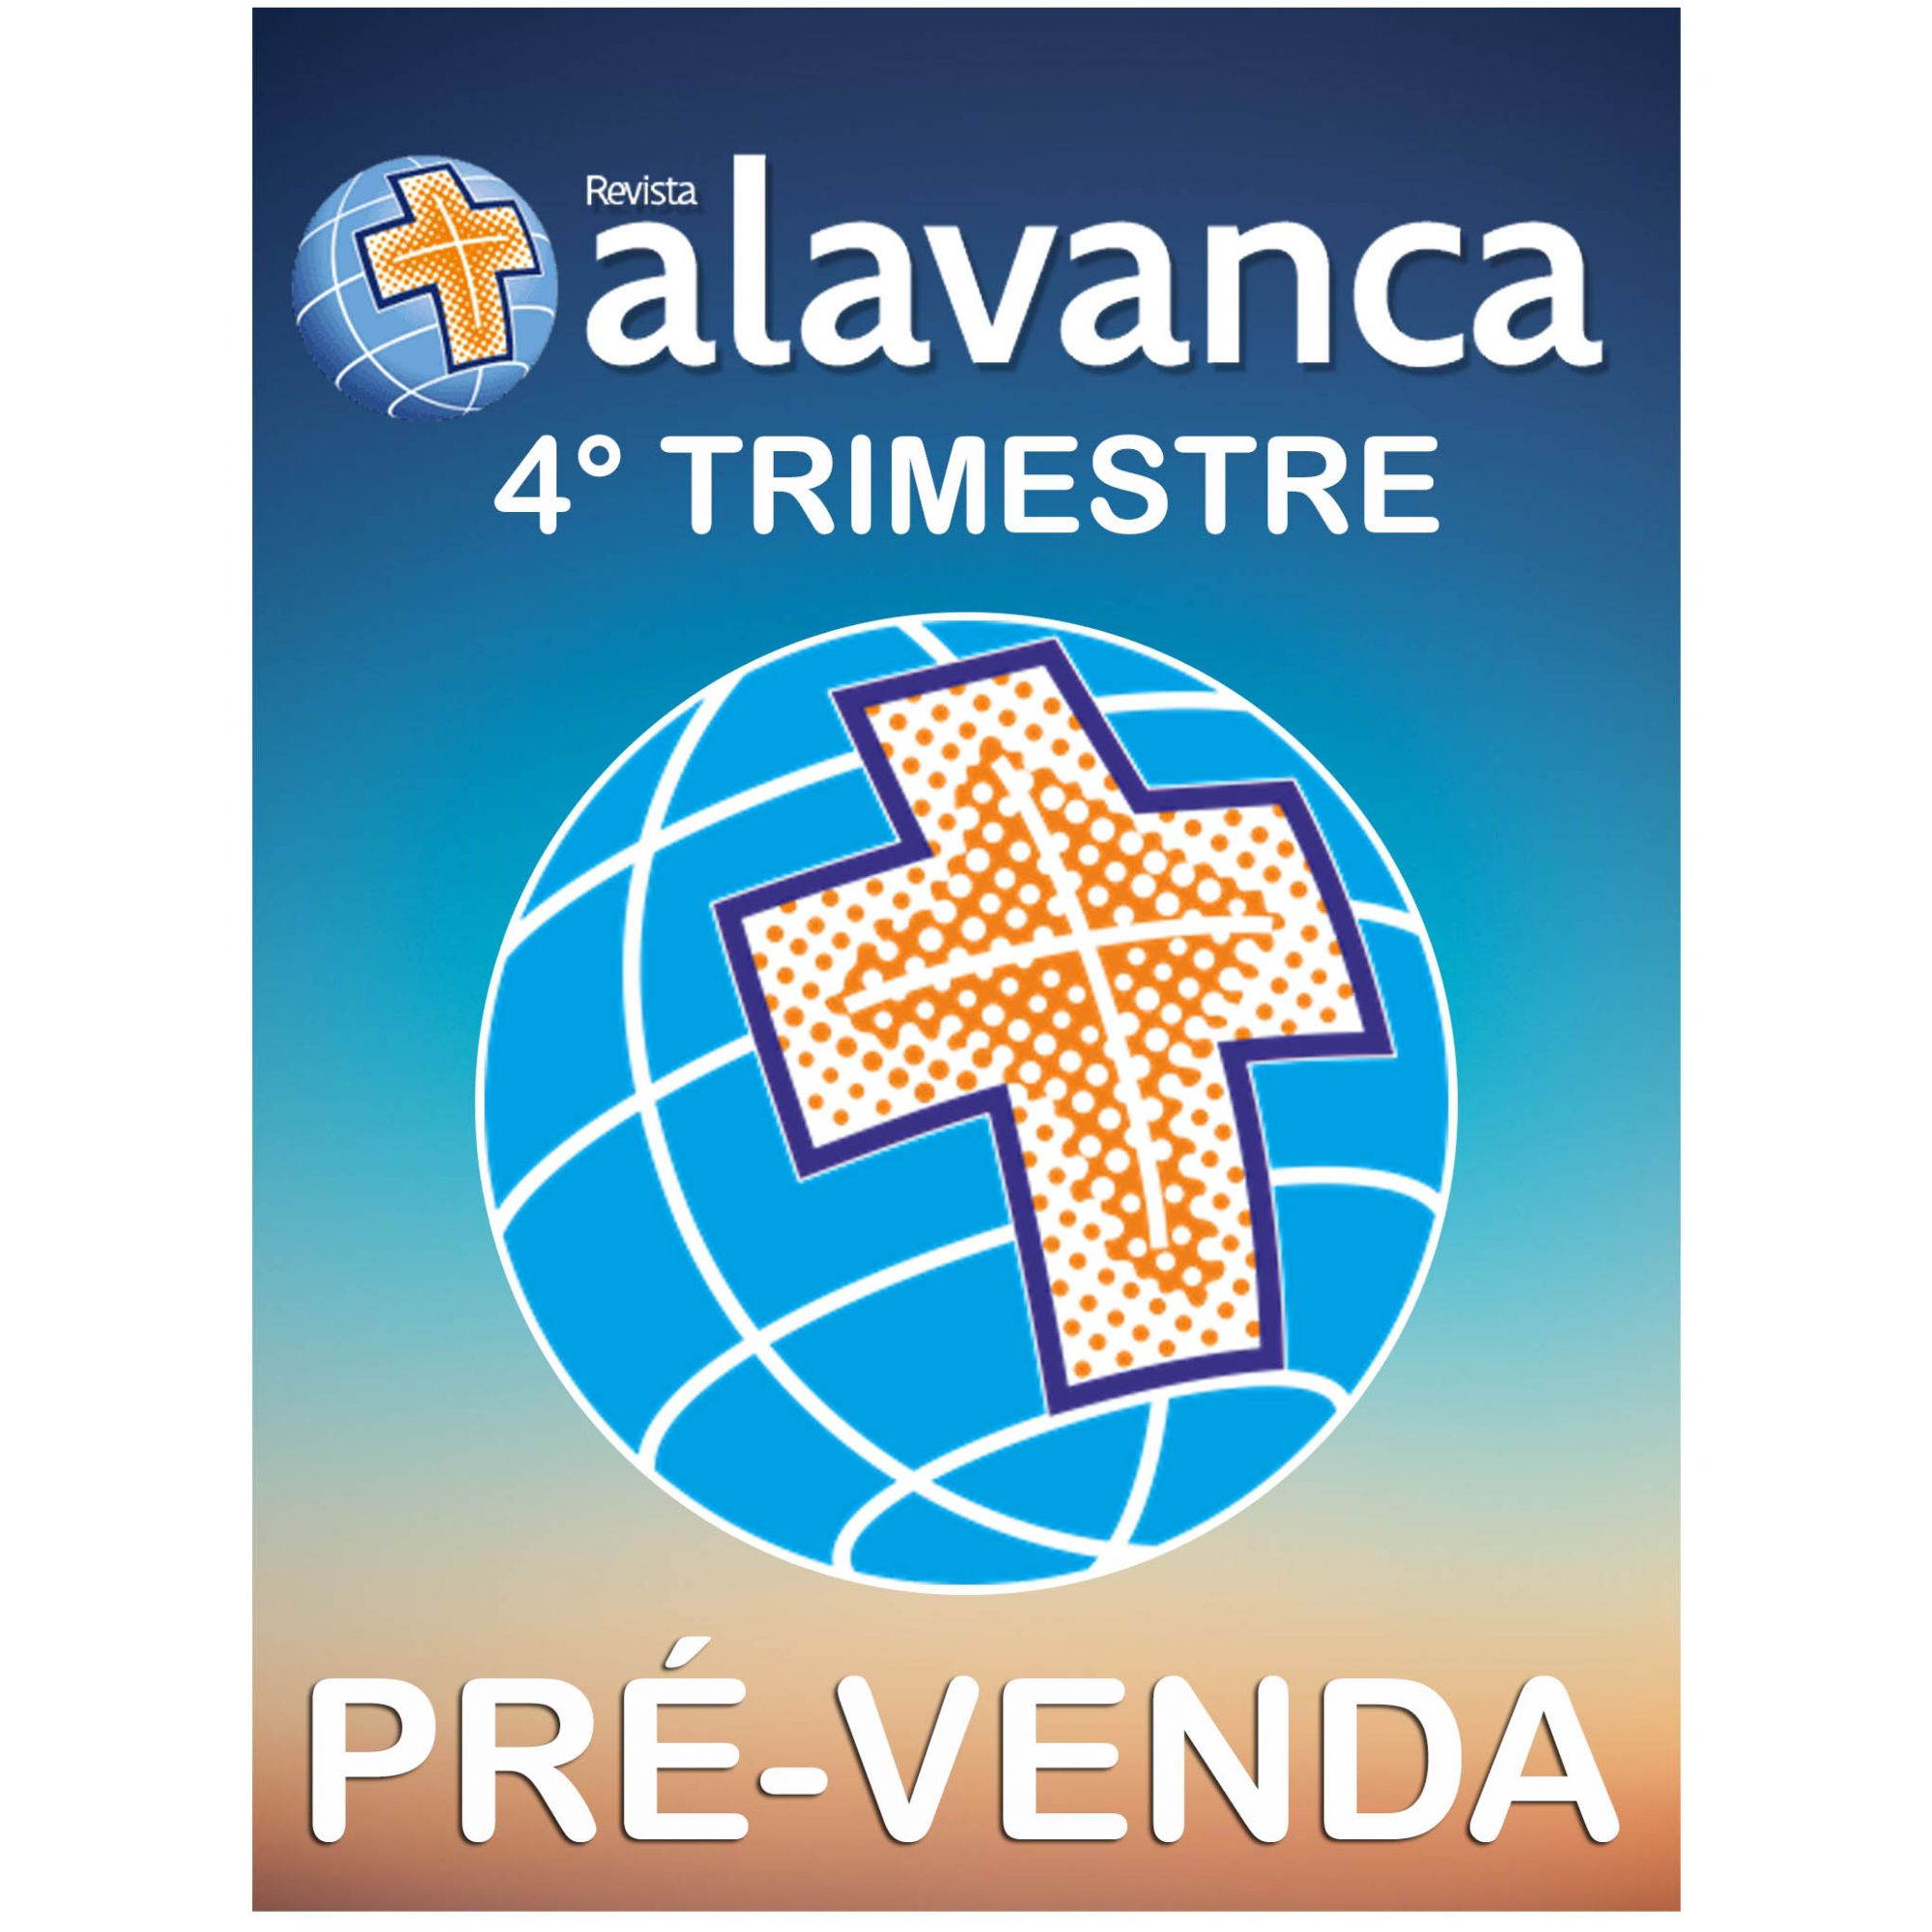 Revista Alavanca 4° Trimestre/2019 (PRÉ-VENDA)